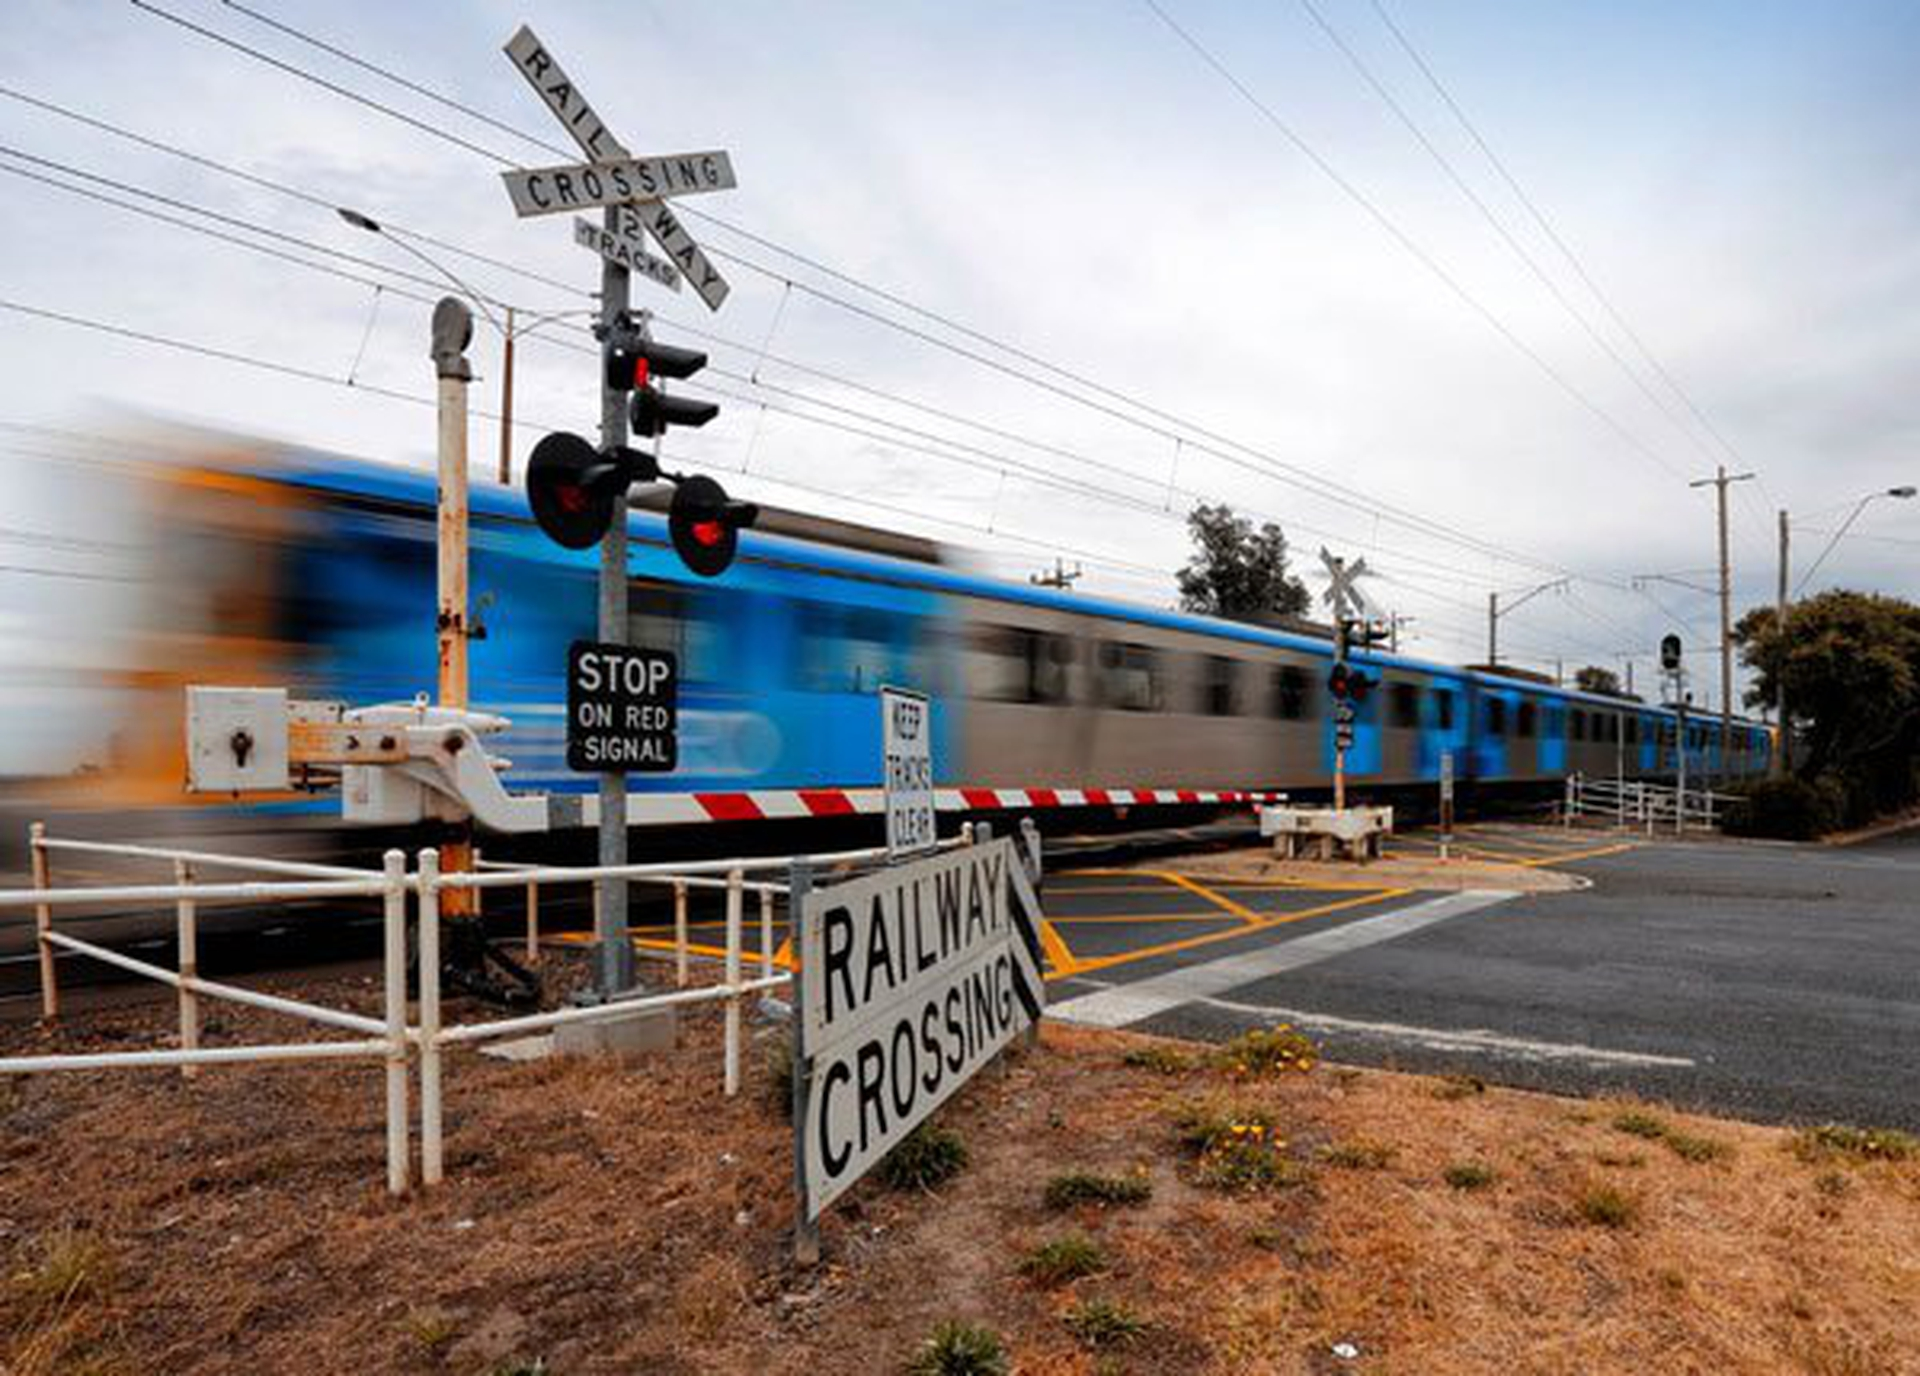 Railroad Crossing Safety Rules